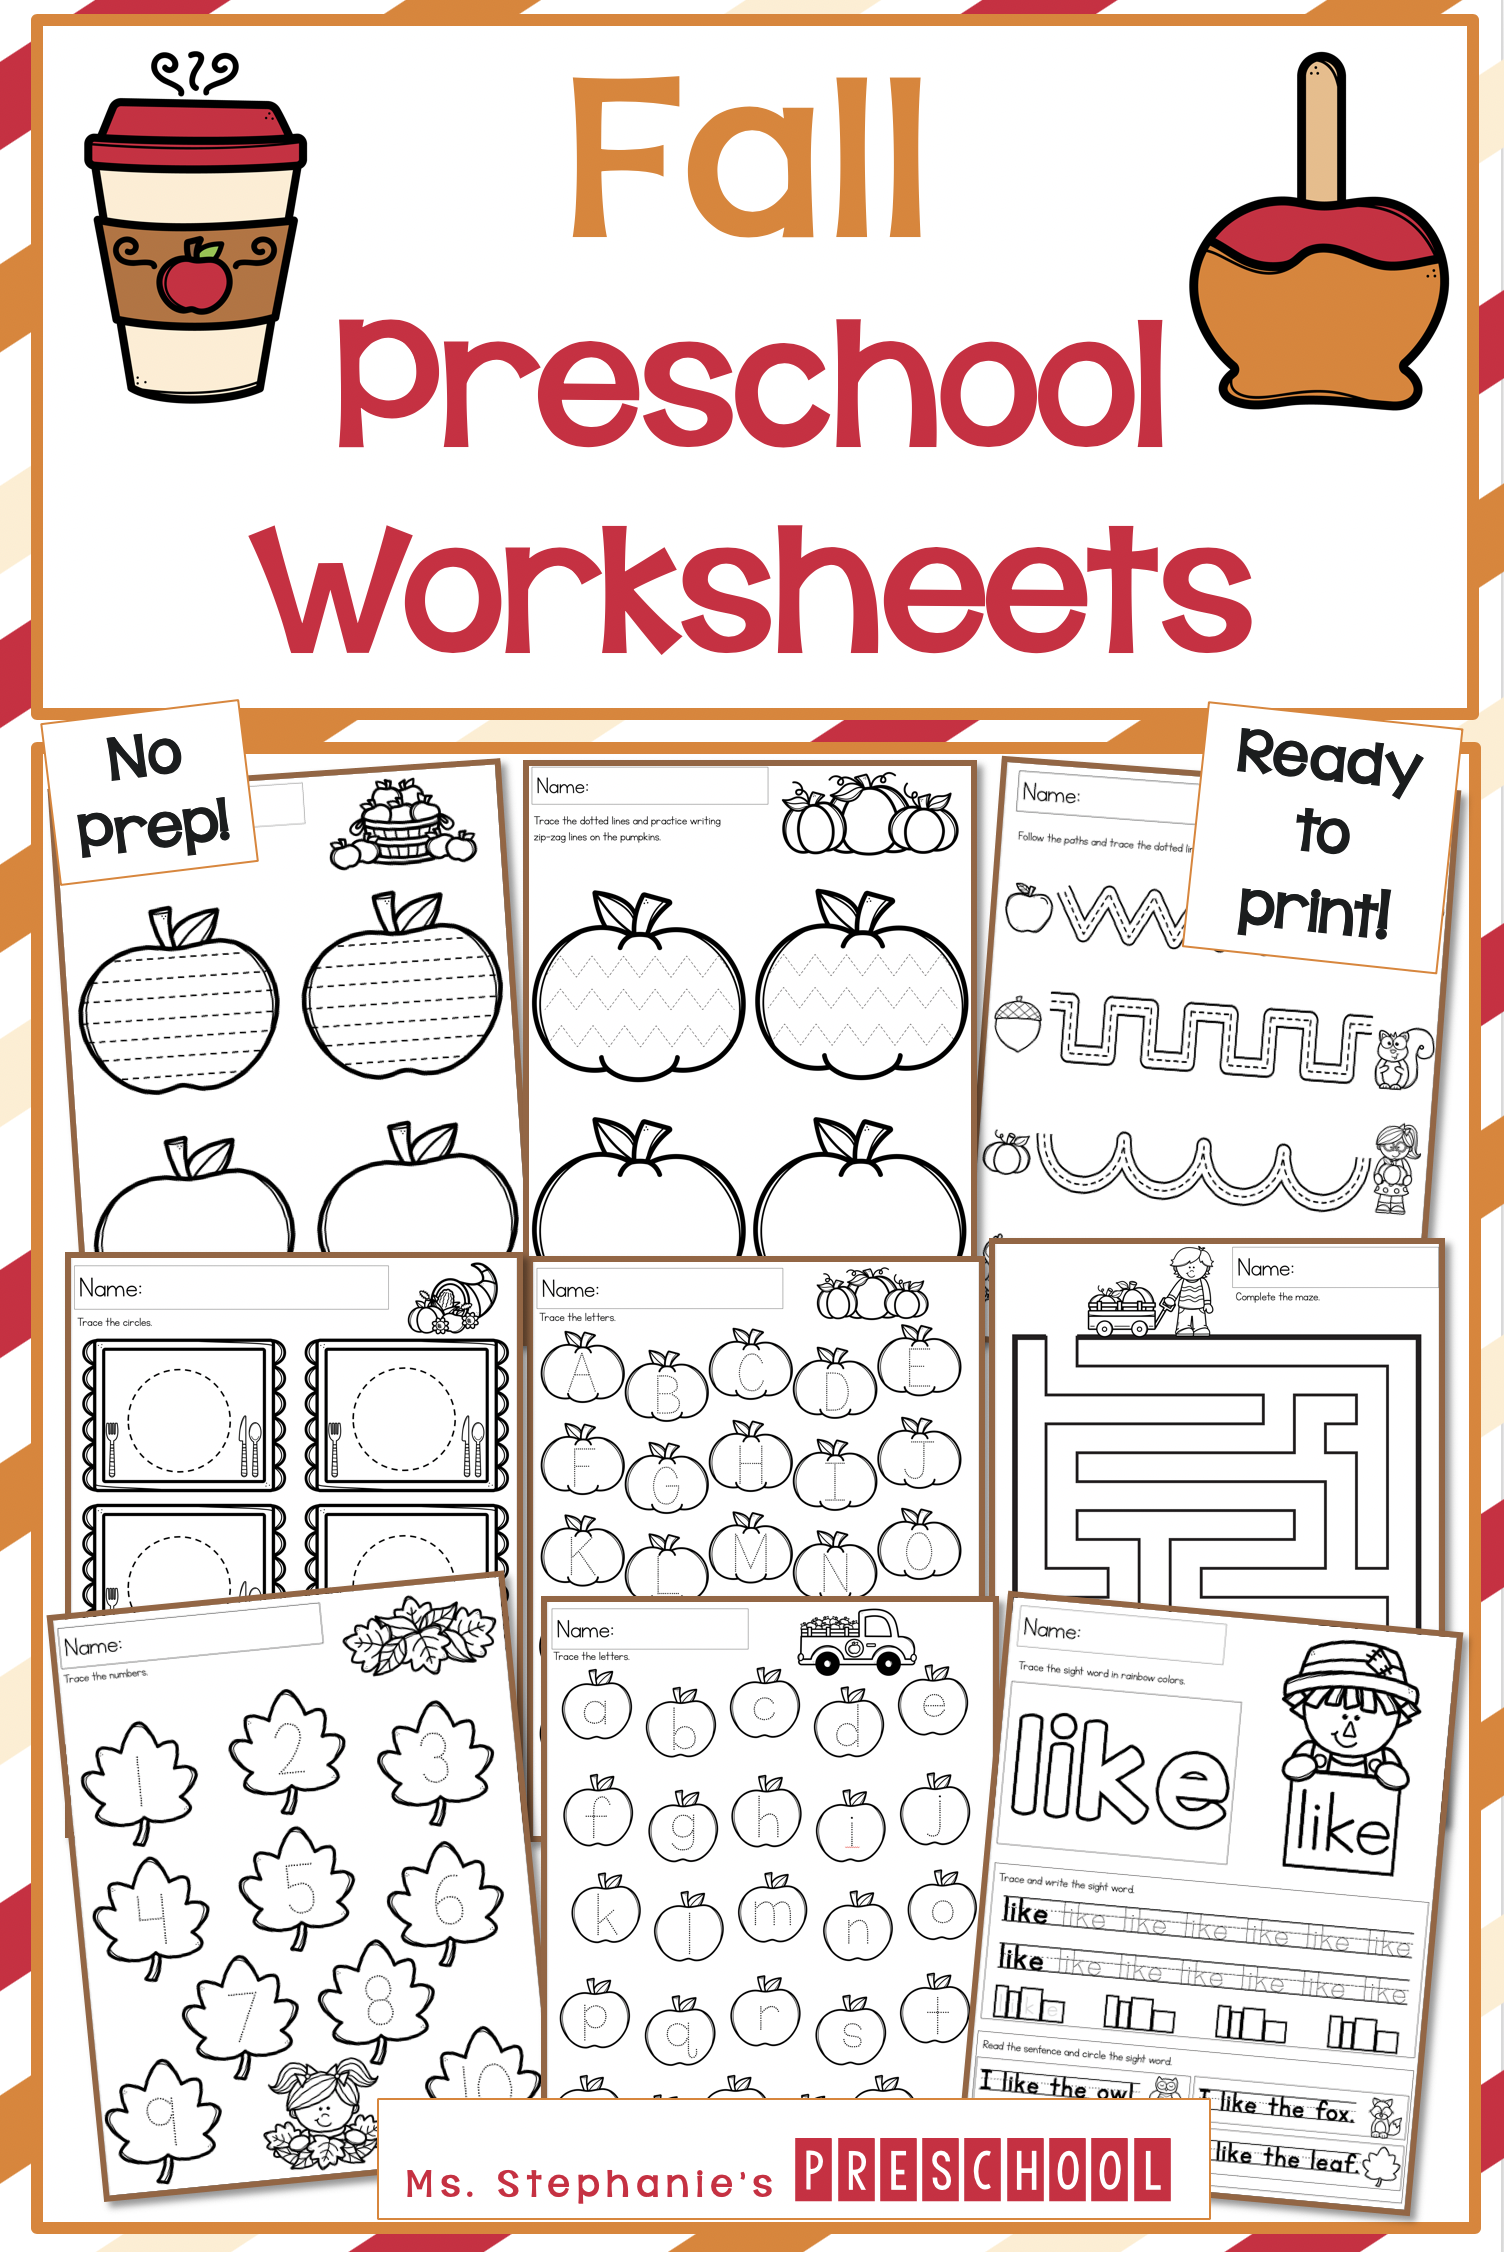 These Fun No Prep Fall Preschool Worksheets Are Ready To